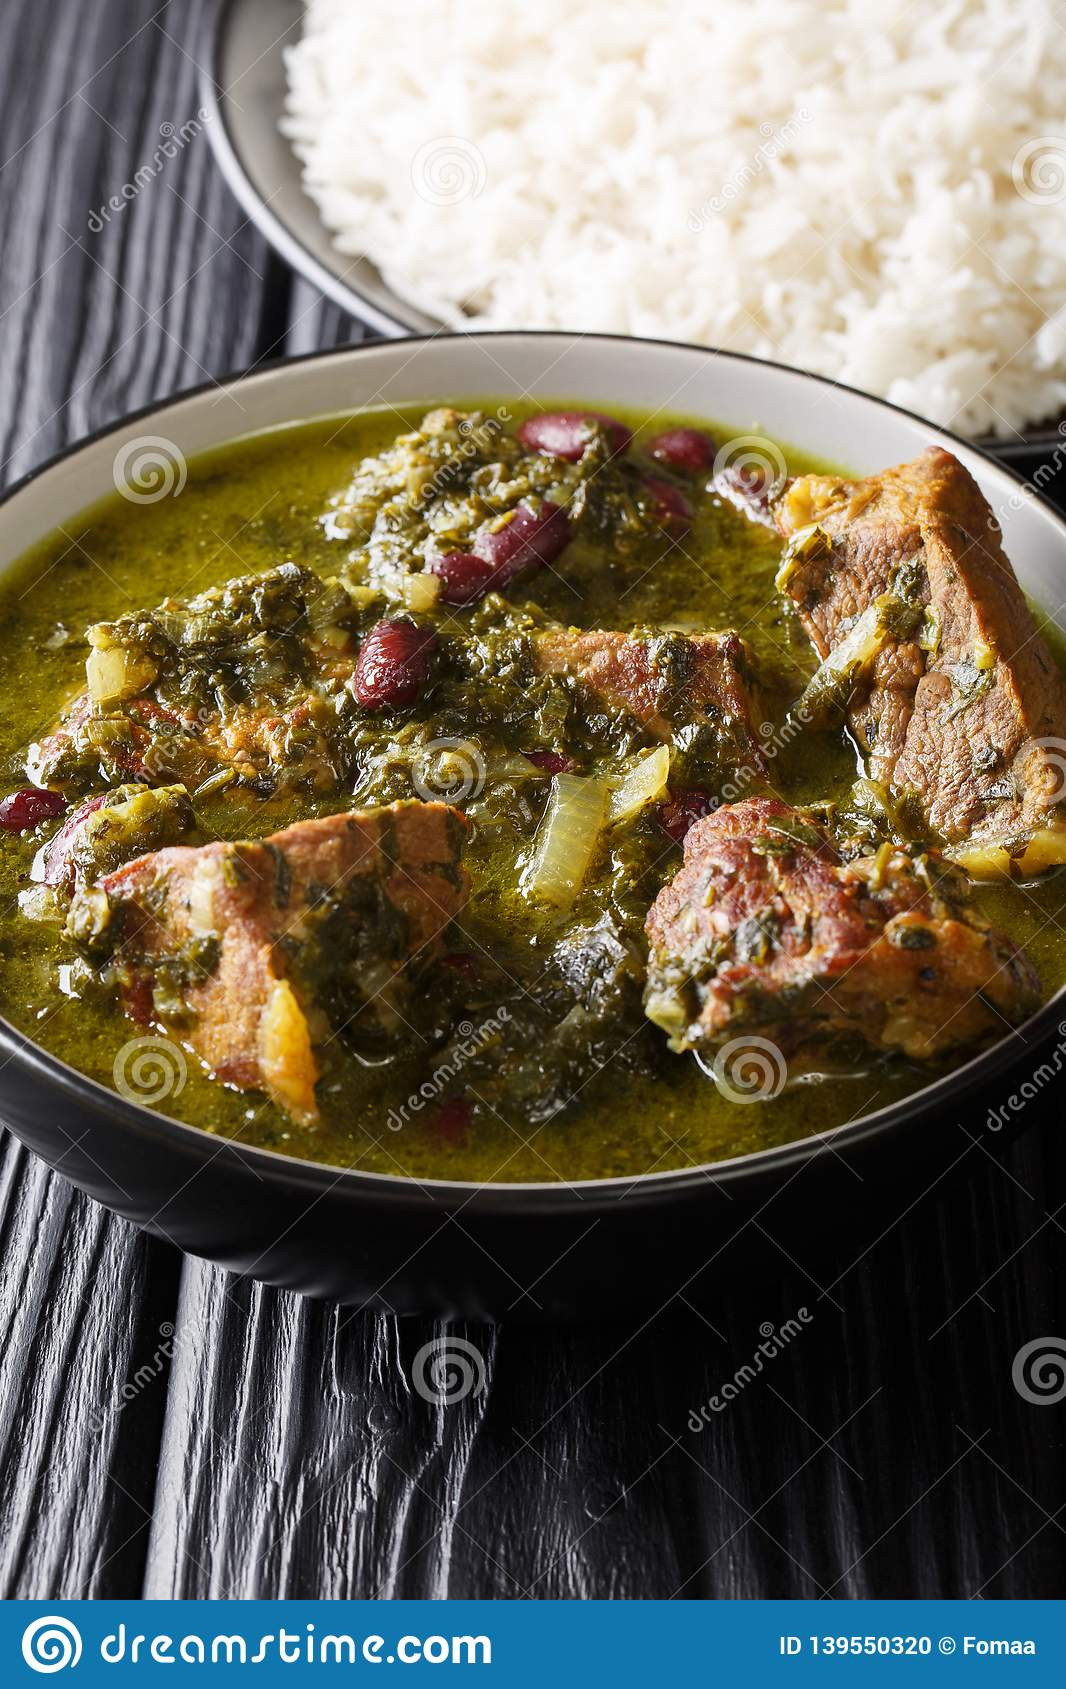 Middle East Lamb Stew  Middle Eastern Lamb Stew Meat With Herbs And Beans Close